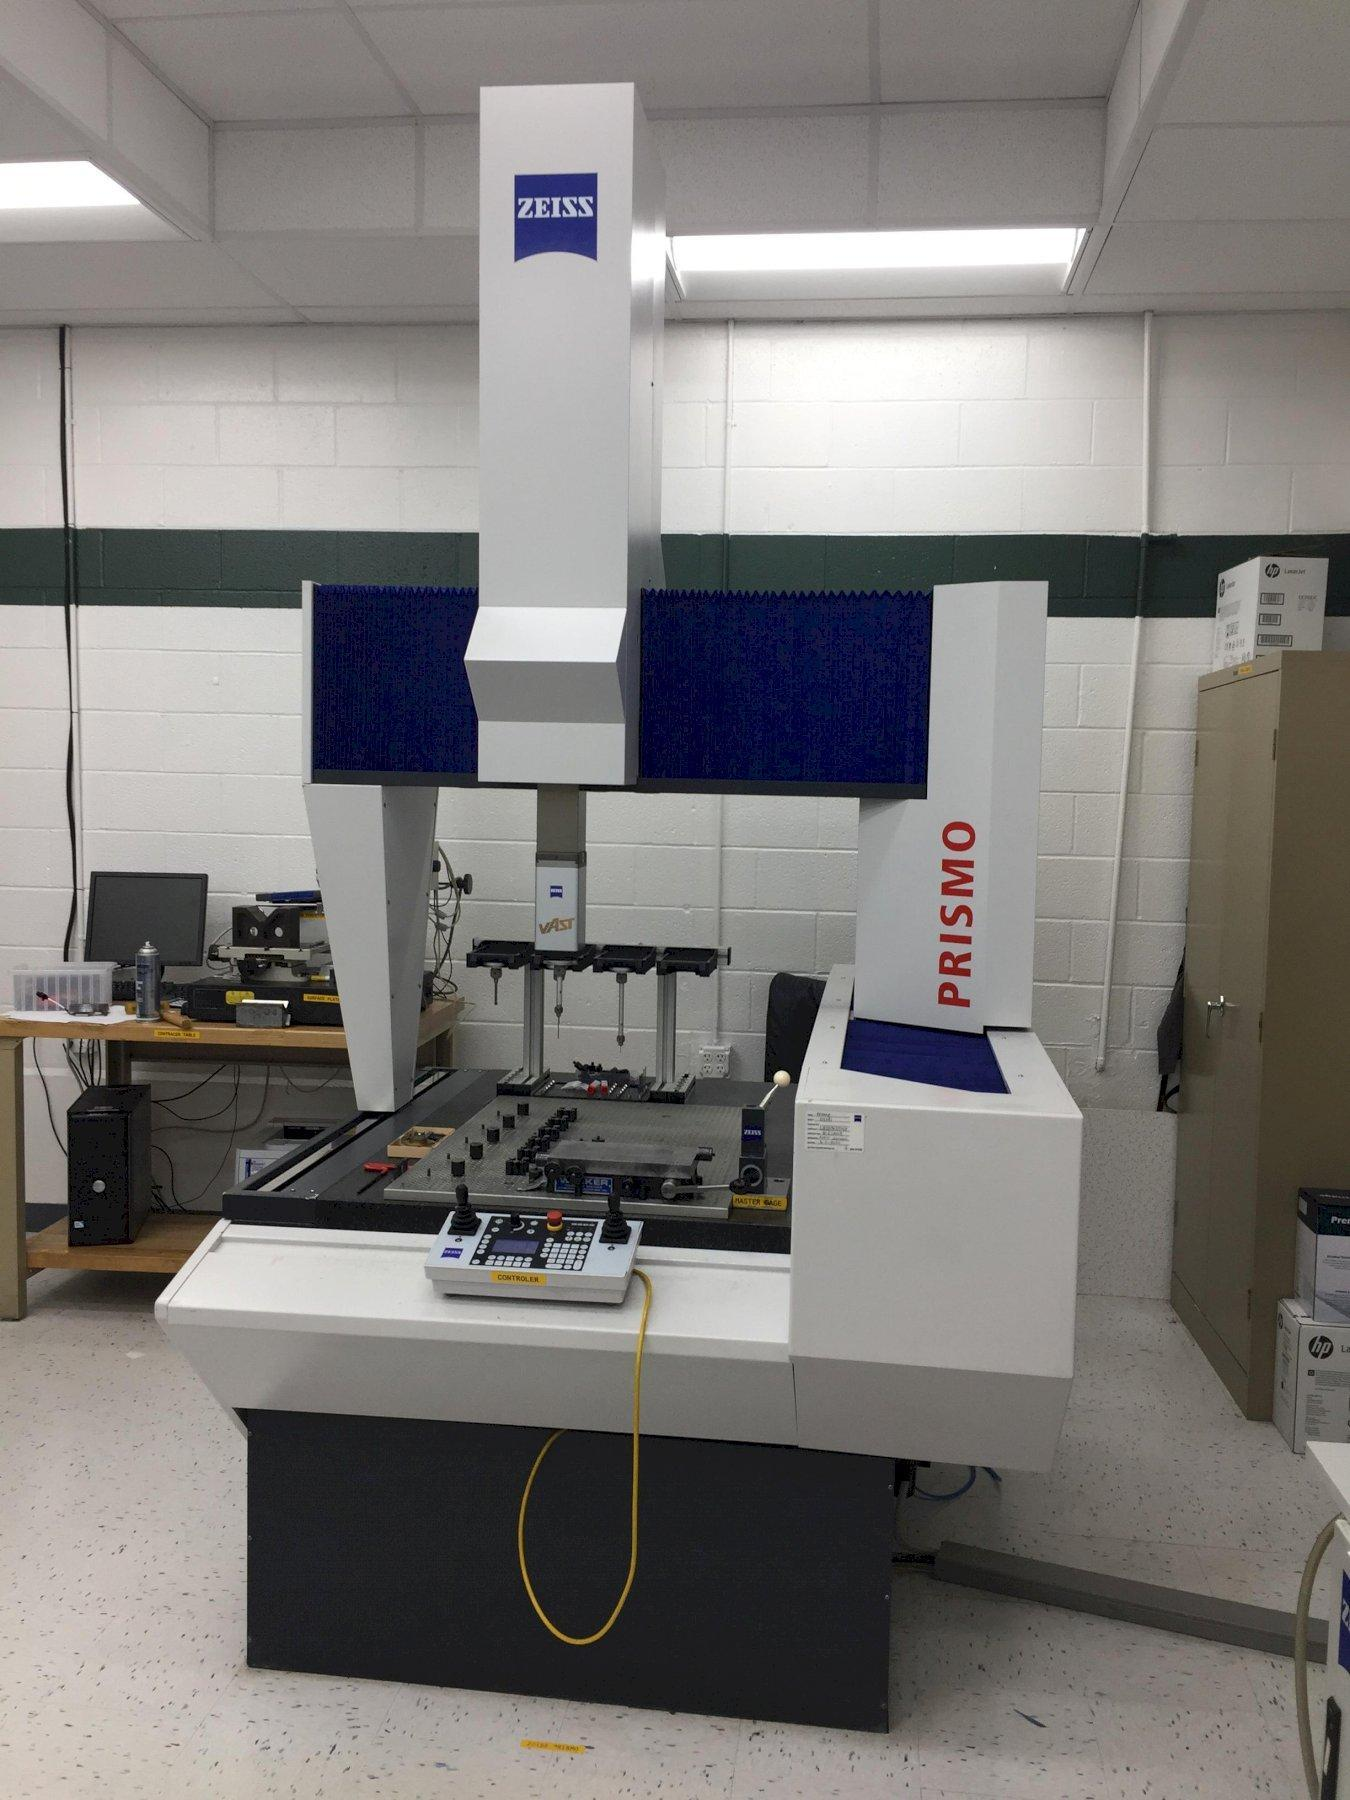 ZEISS PRISMO 7.9.5 DCC COORDINATE MEASURING MACHINE (CMM)